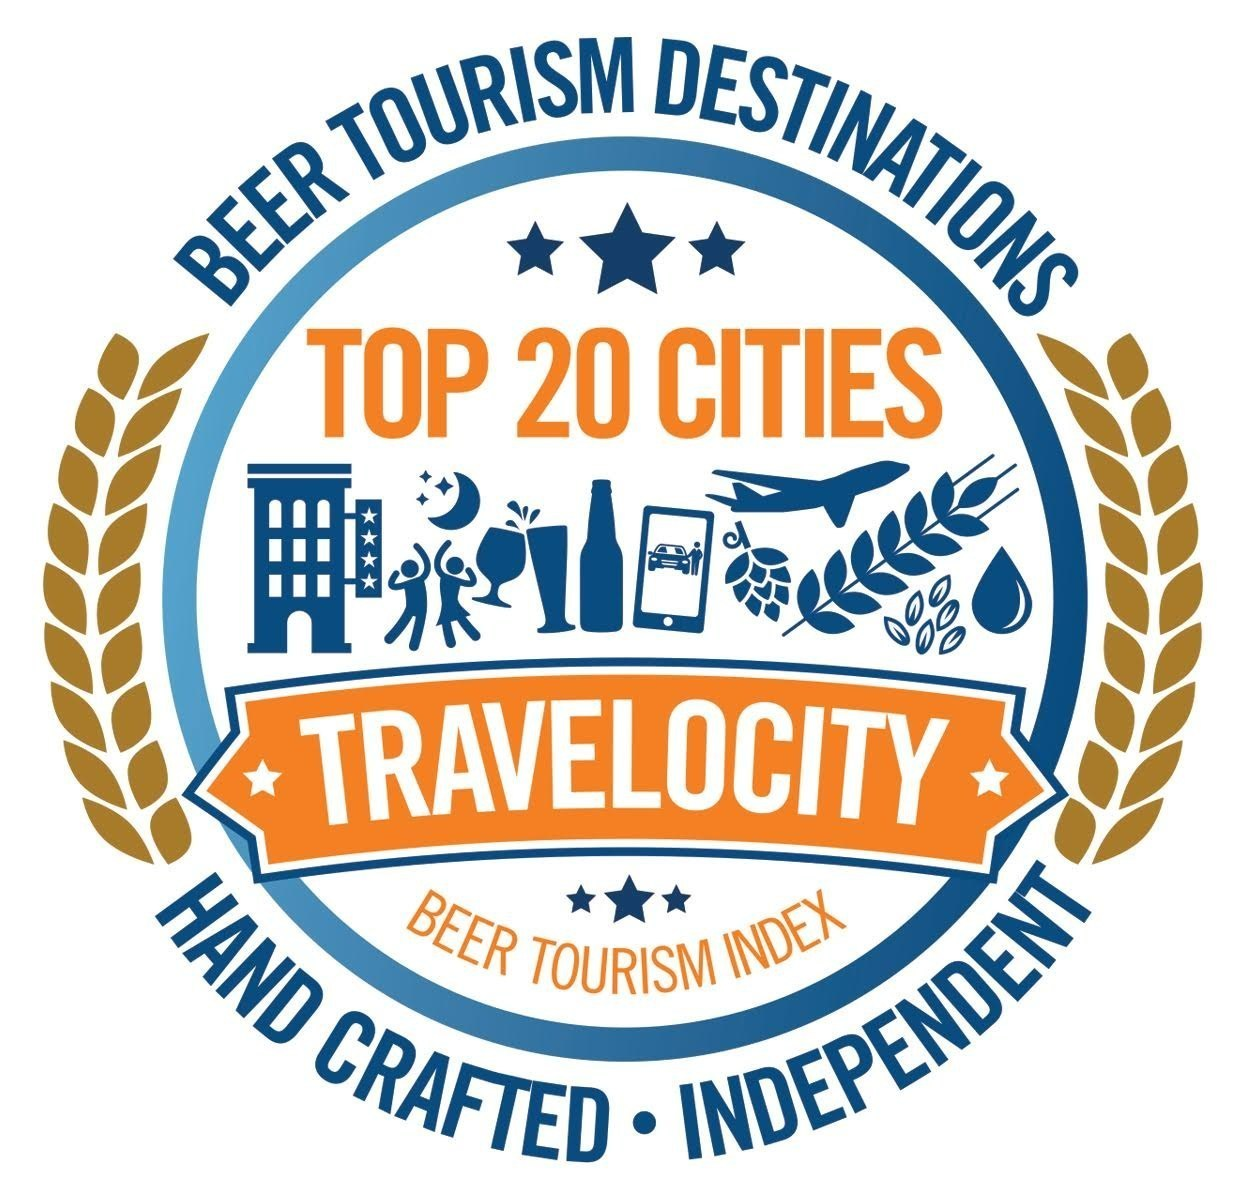 Recognizing this interest in beer tourism, Travelocity enlisted the expertise of the Brewers Association, a national trade association dedicated to promoting American craft brewers, their beers and the community of brewing enthusiasts, to find America's best beer destinations by creating the first Beer Tourism Index. (PRNewsFoto/Travelocity)